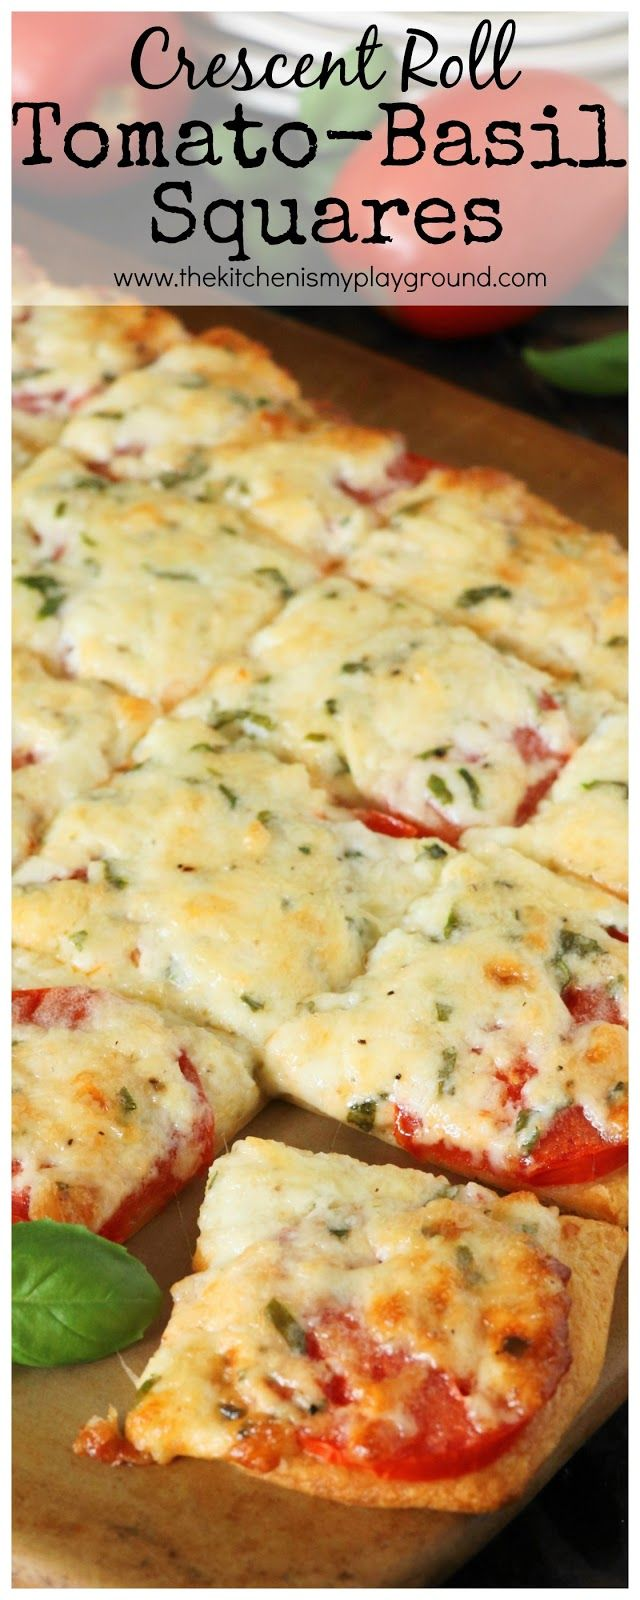 Crescent Roll Tomato-Basil Squares (sub mayo for cottage cheese)